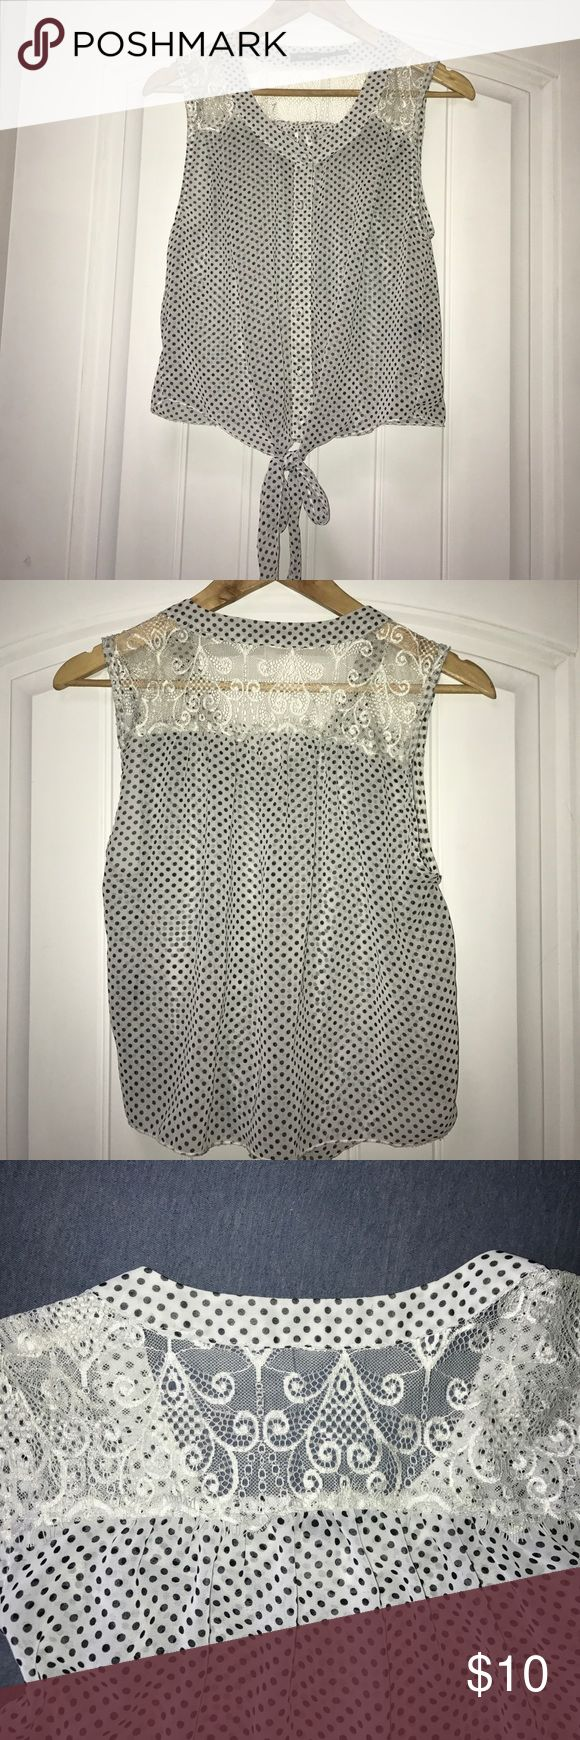 "Poetry Polka Dot Crop Top Sleeveless blouse/crop top with black polka dots and lace detail at the top. Ties at bottom and has matching fabric-covered buttons. Gently used, no rips or stains. 100% polyester Length: 19.5"" Poetry Tops Crop Tops"